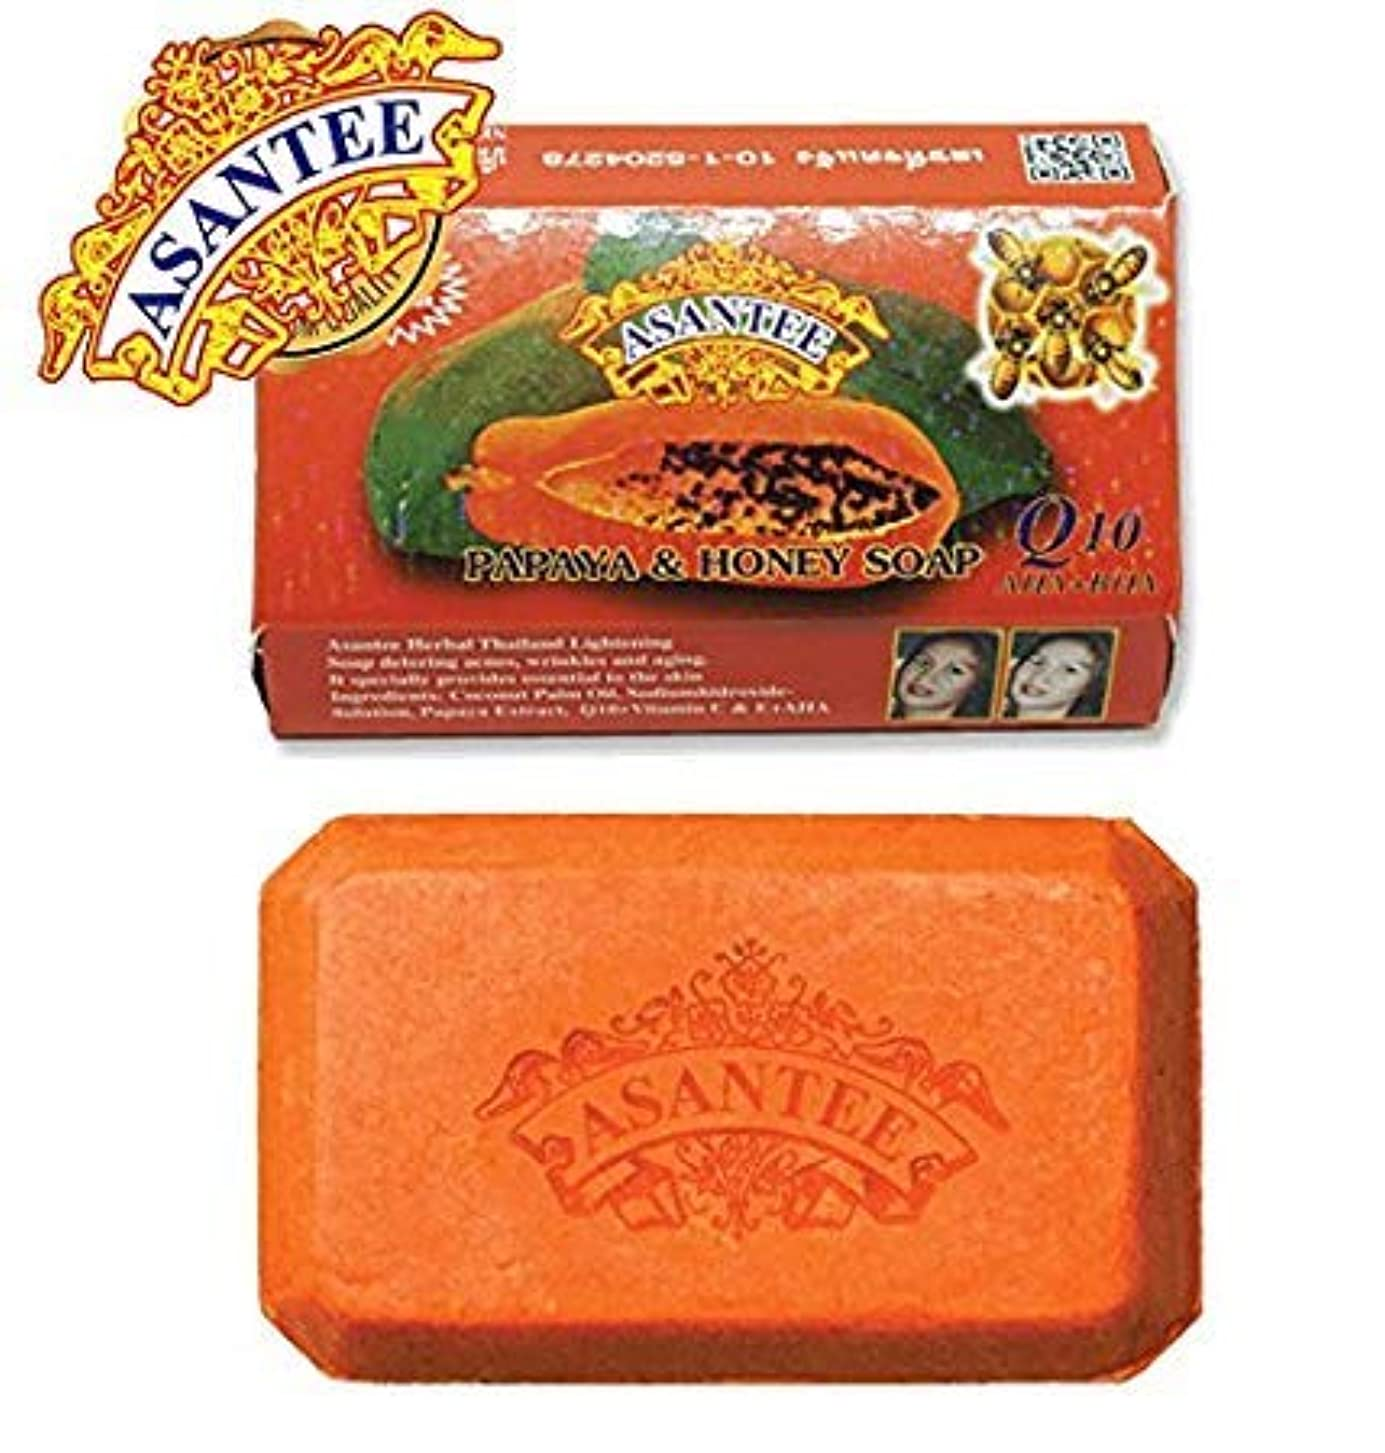 巨人広々頻繁にAsantee Thai Papaya Herbal Skin Whitening Soap 135g (1 pcs)